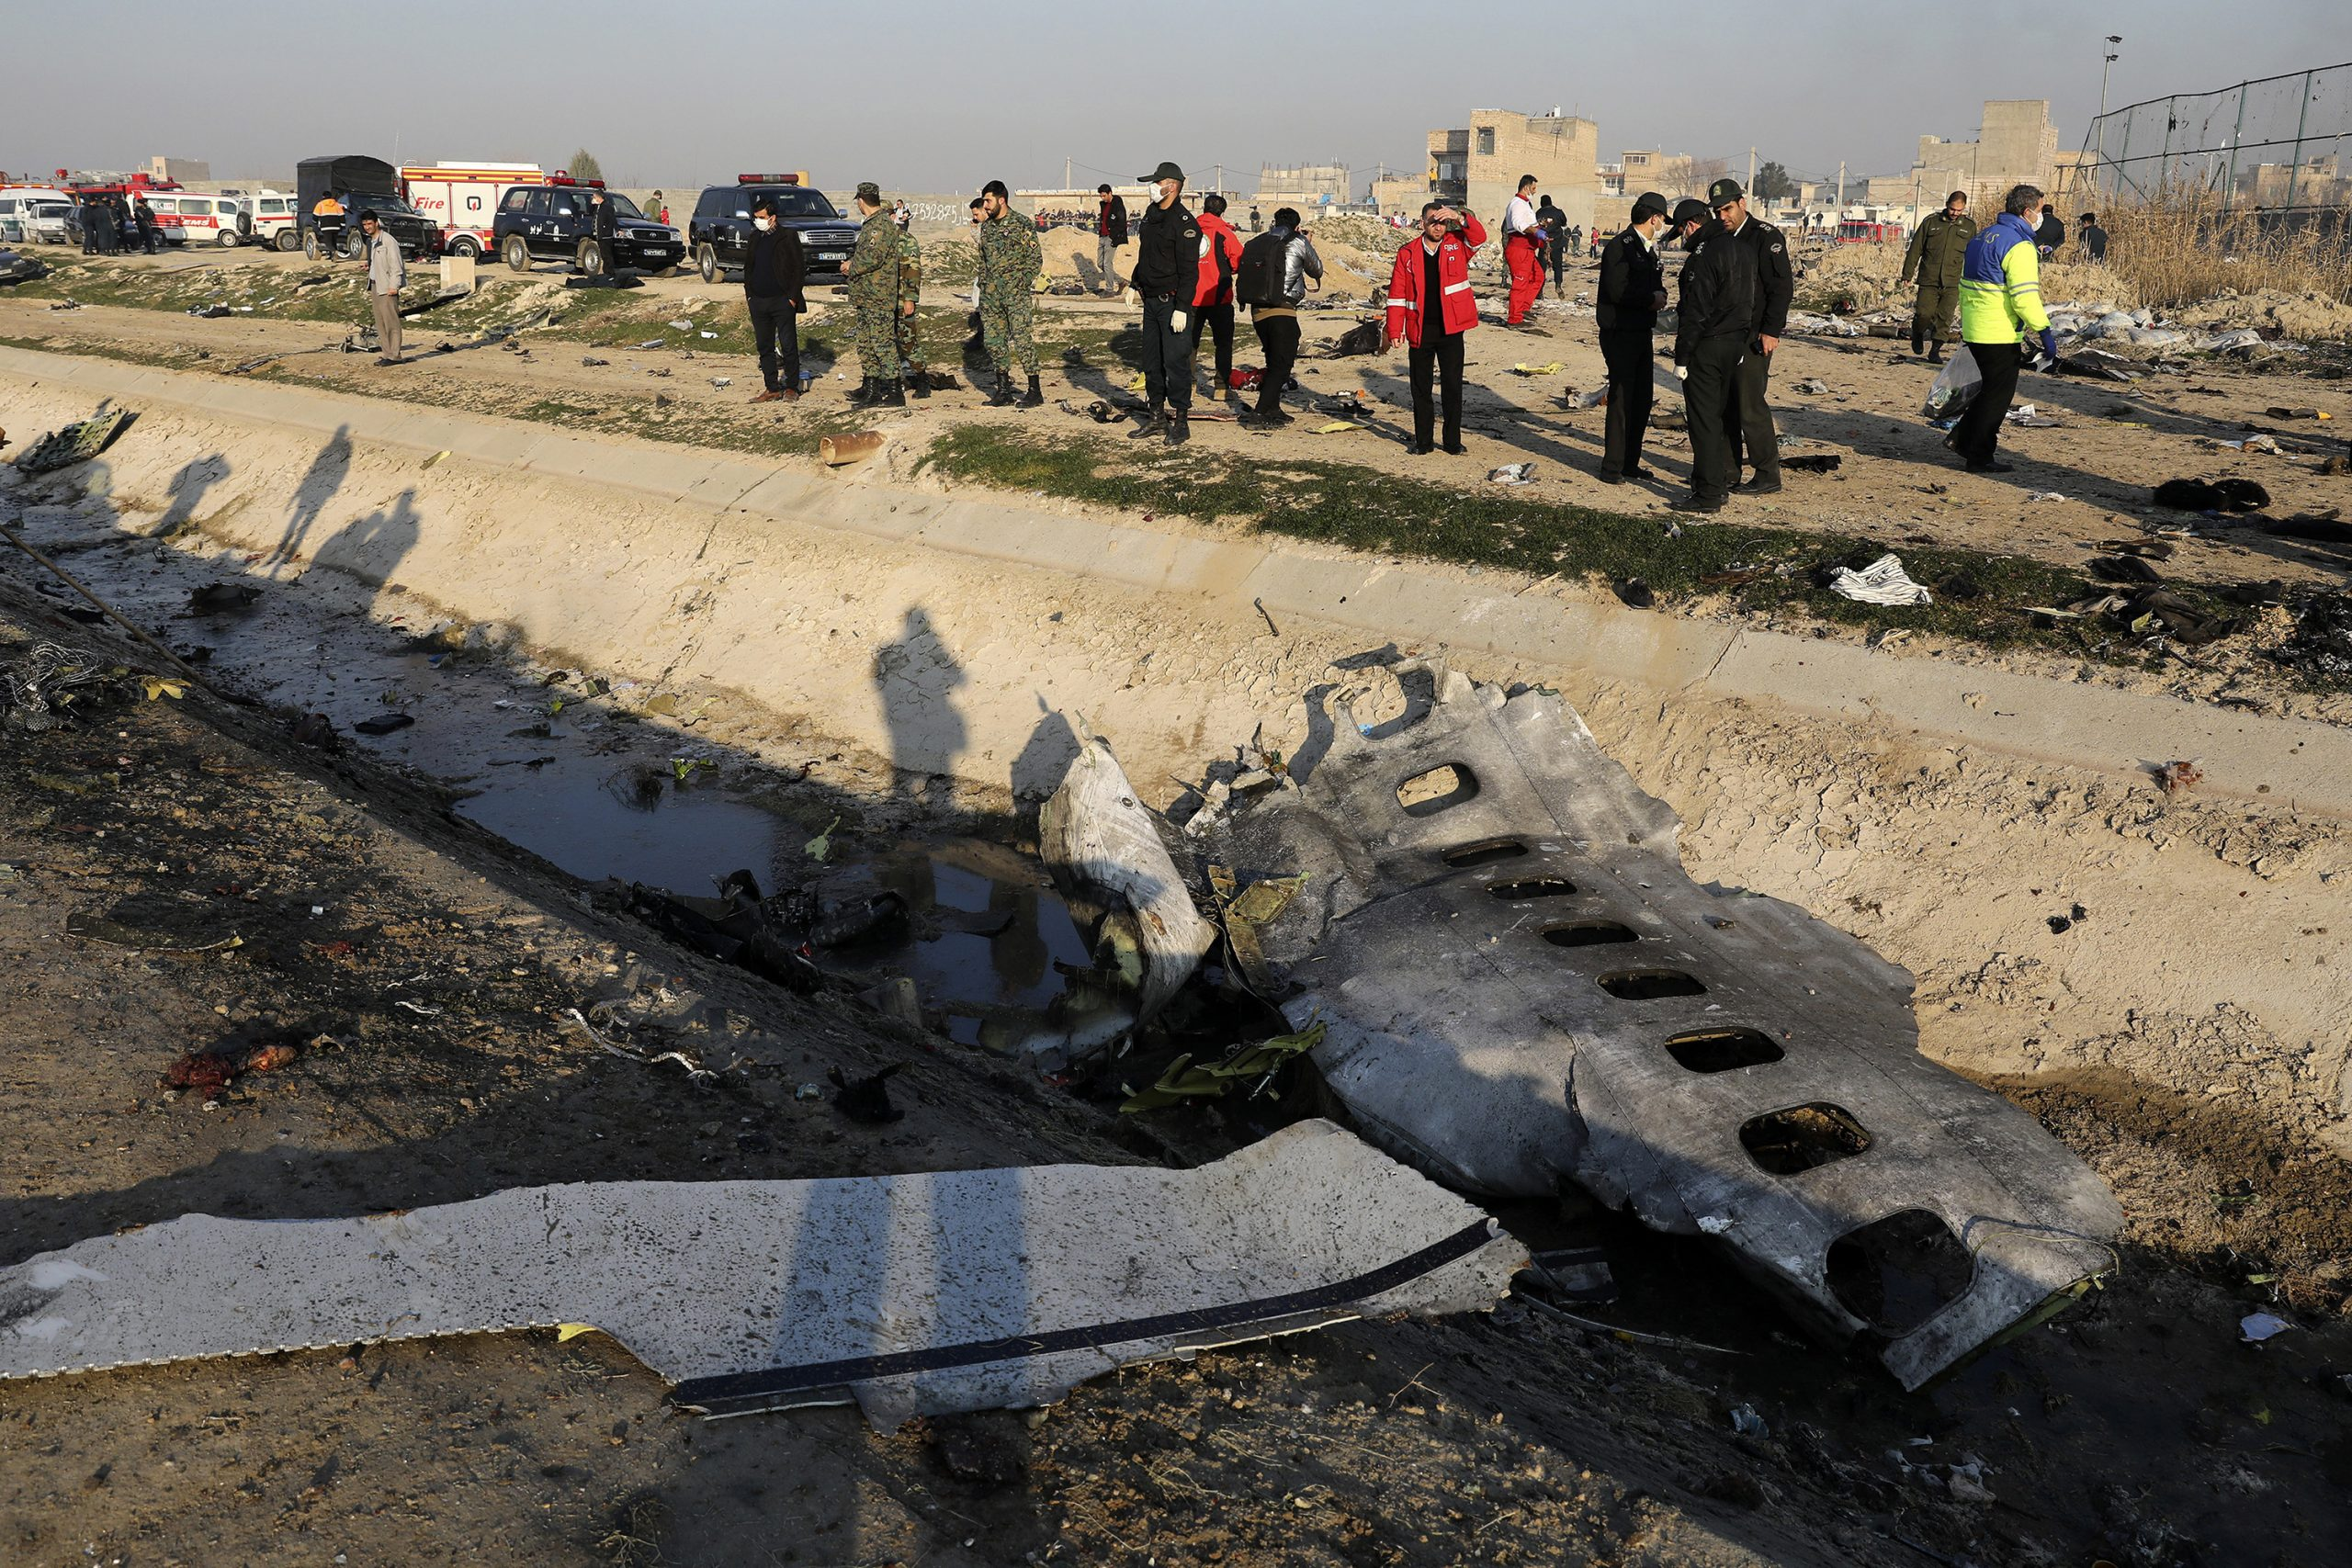 Iran data calls, cockpit conversations from Downed Plane Ukraine, which left 176 dead